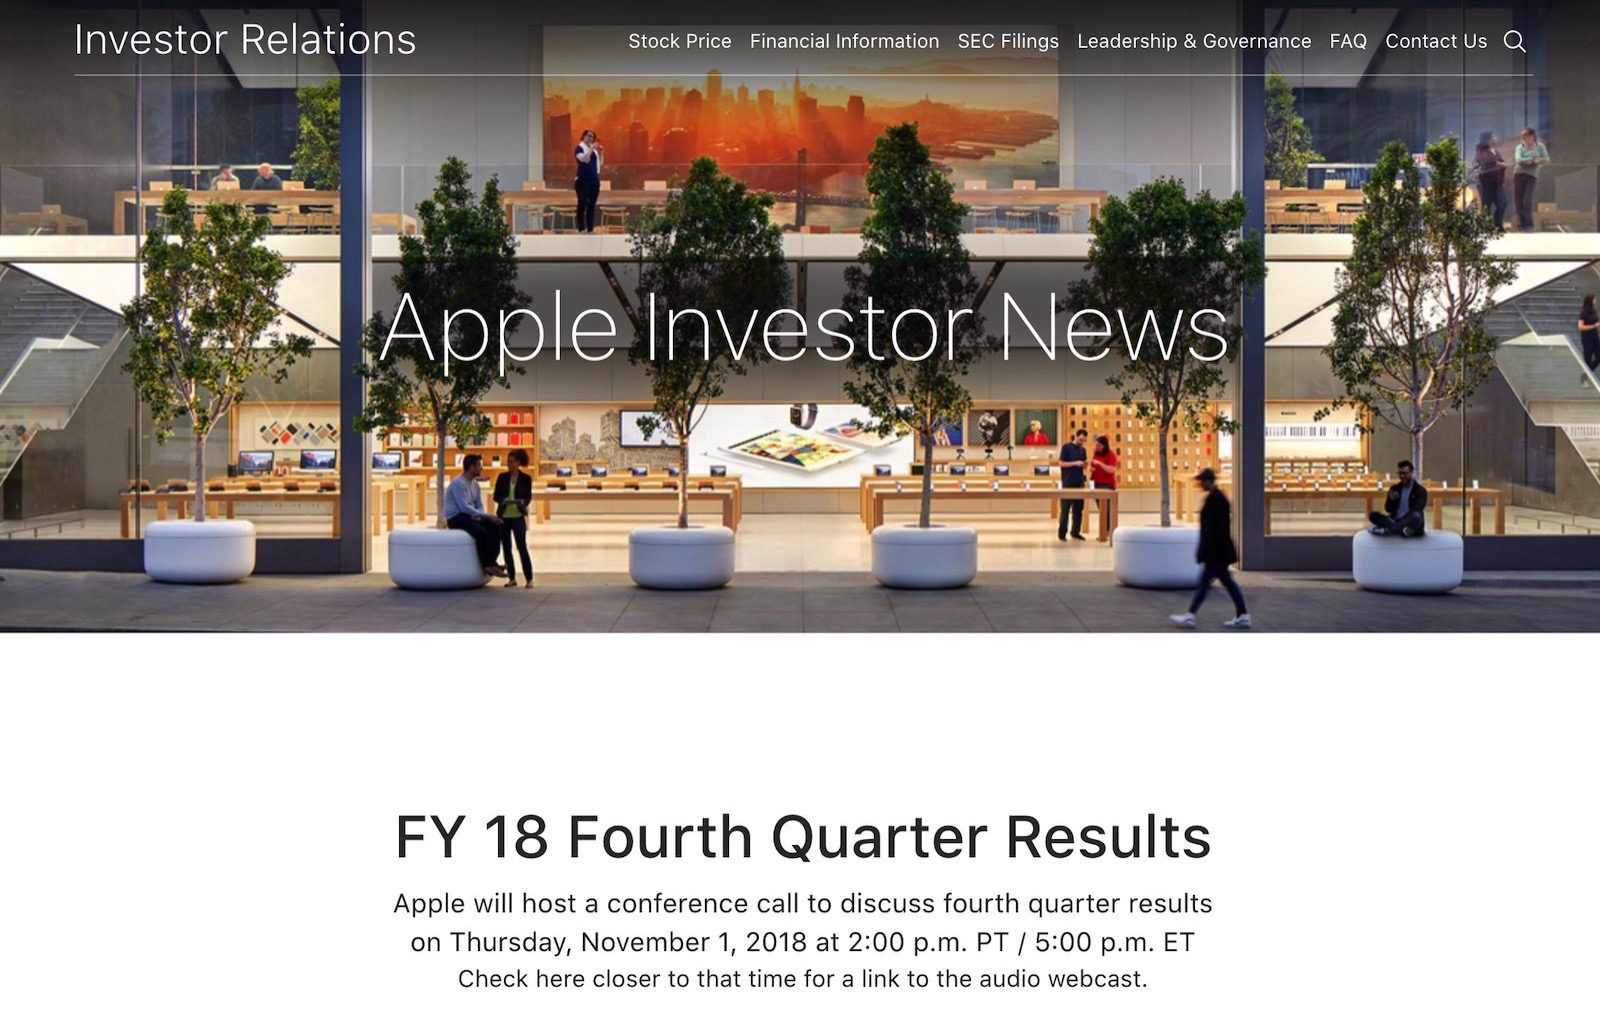 FY 18 Fourth Quarter Results